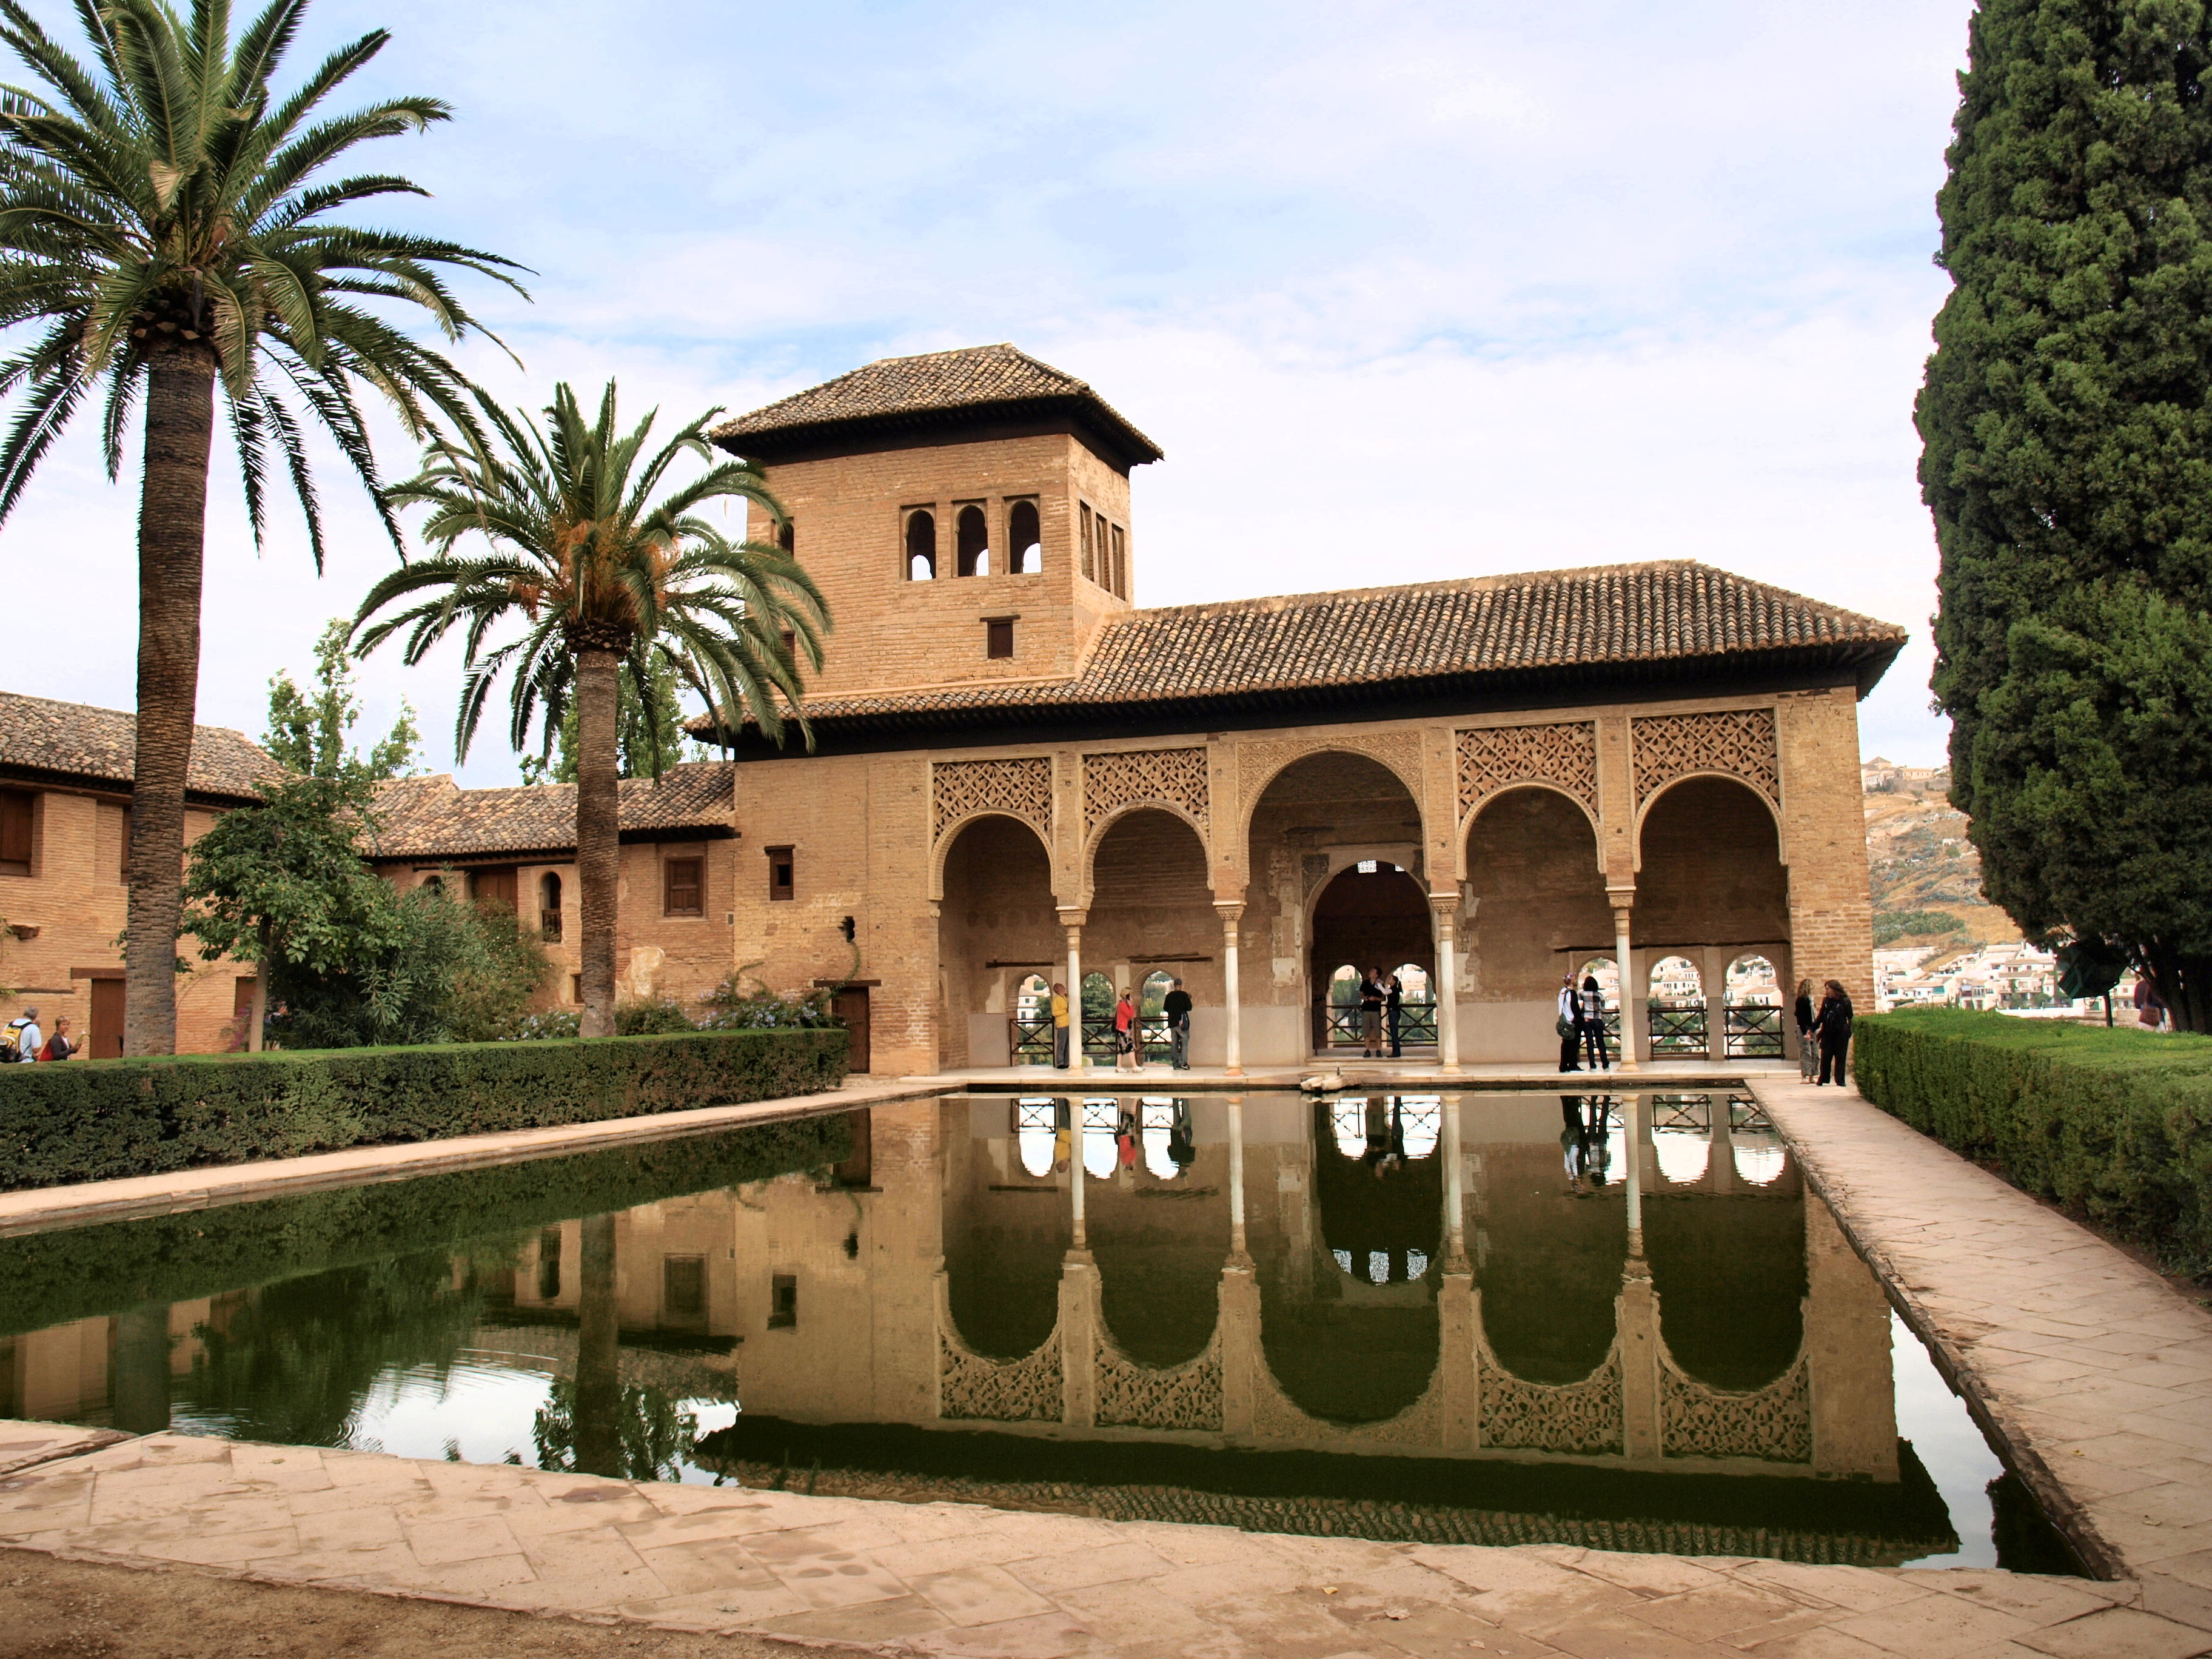 http://upload.wikimedia.org/wikipedia/commons/0/0c/El_Partal_Palace,_Alhambra,_Spain.JPG